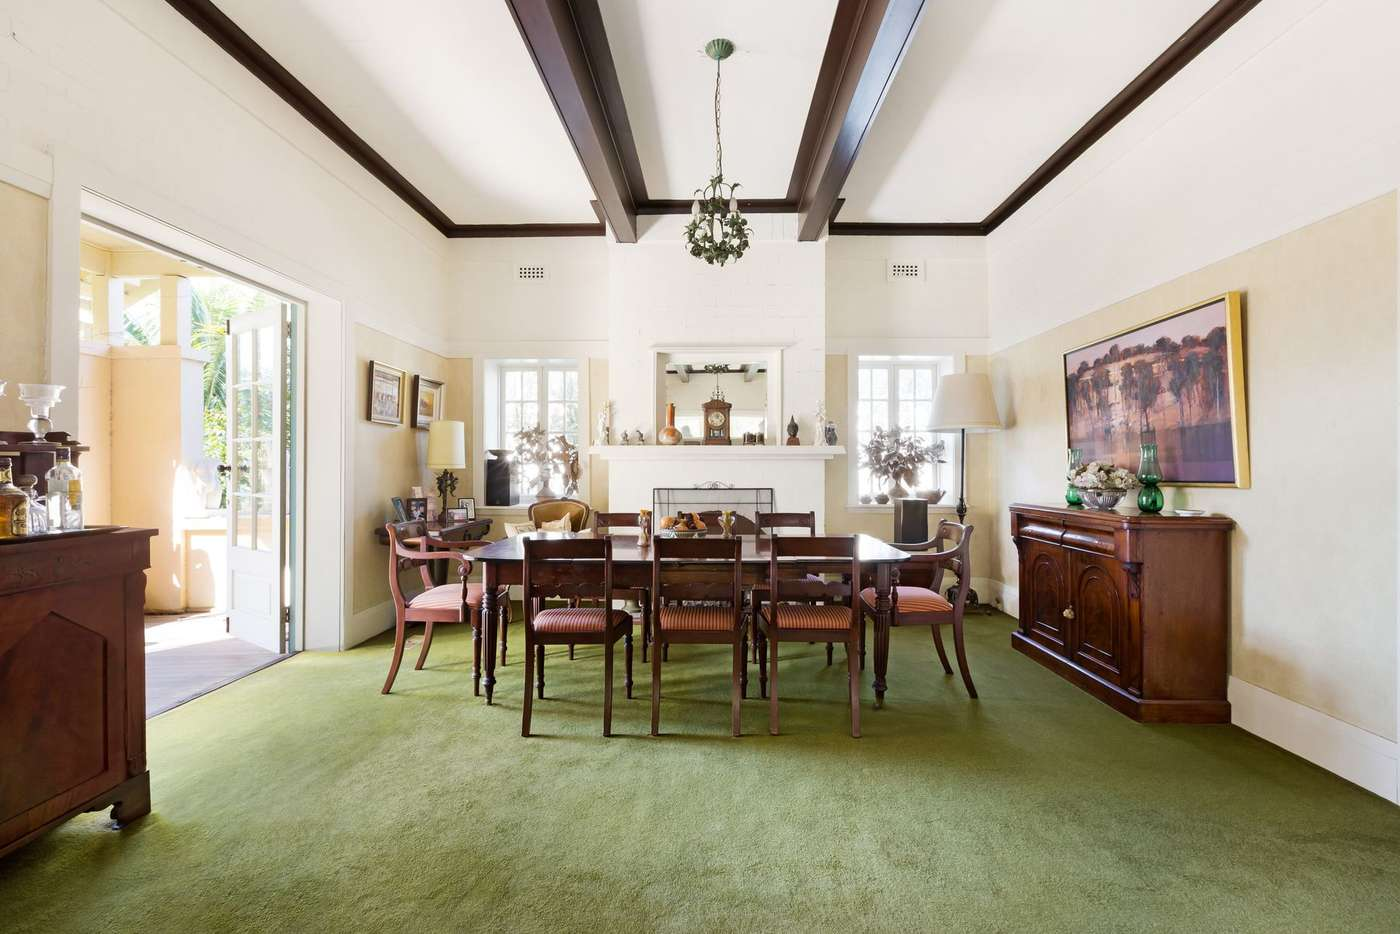 Sixth view of Homely house listing, 2 Beresford Crescent, Bellevue Hill NSW 2023